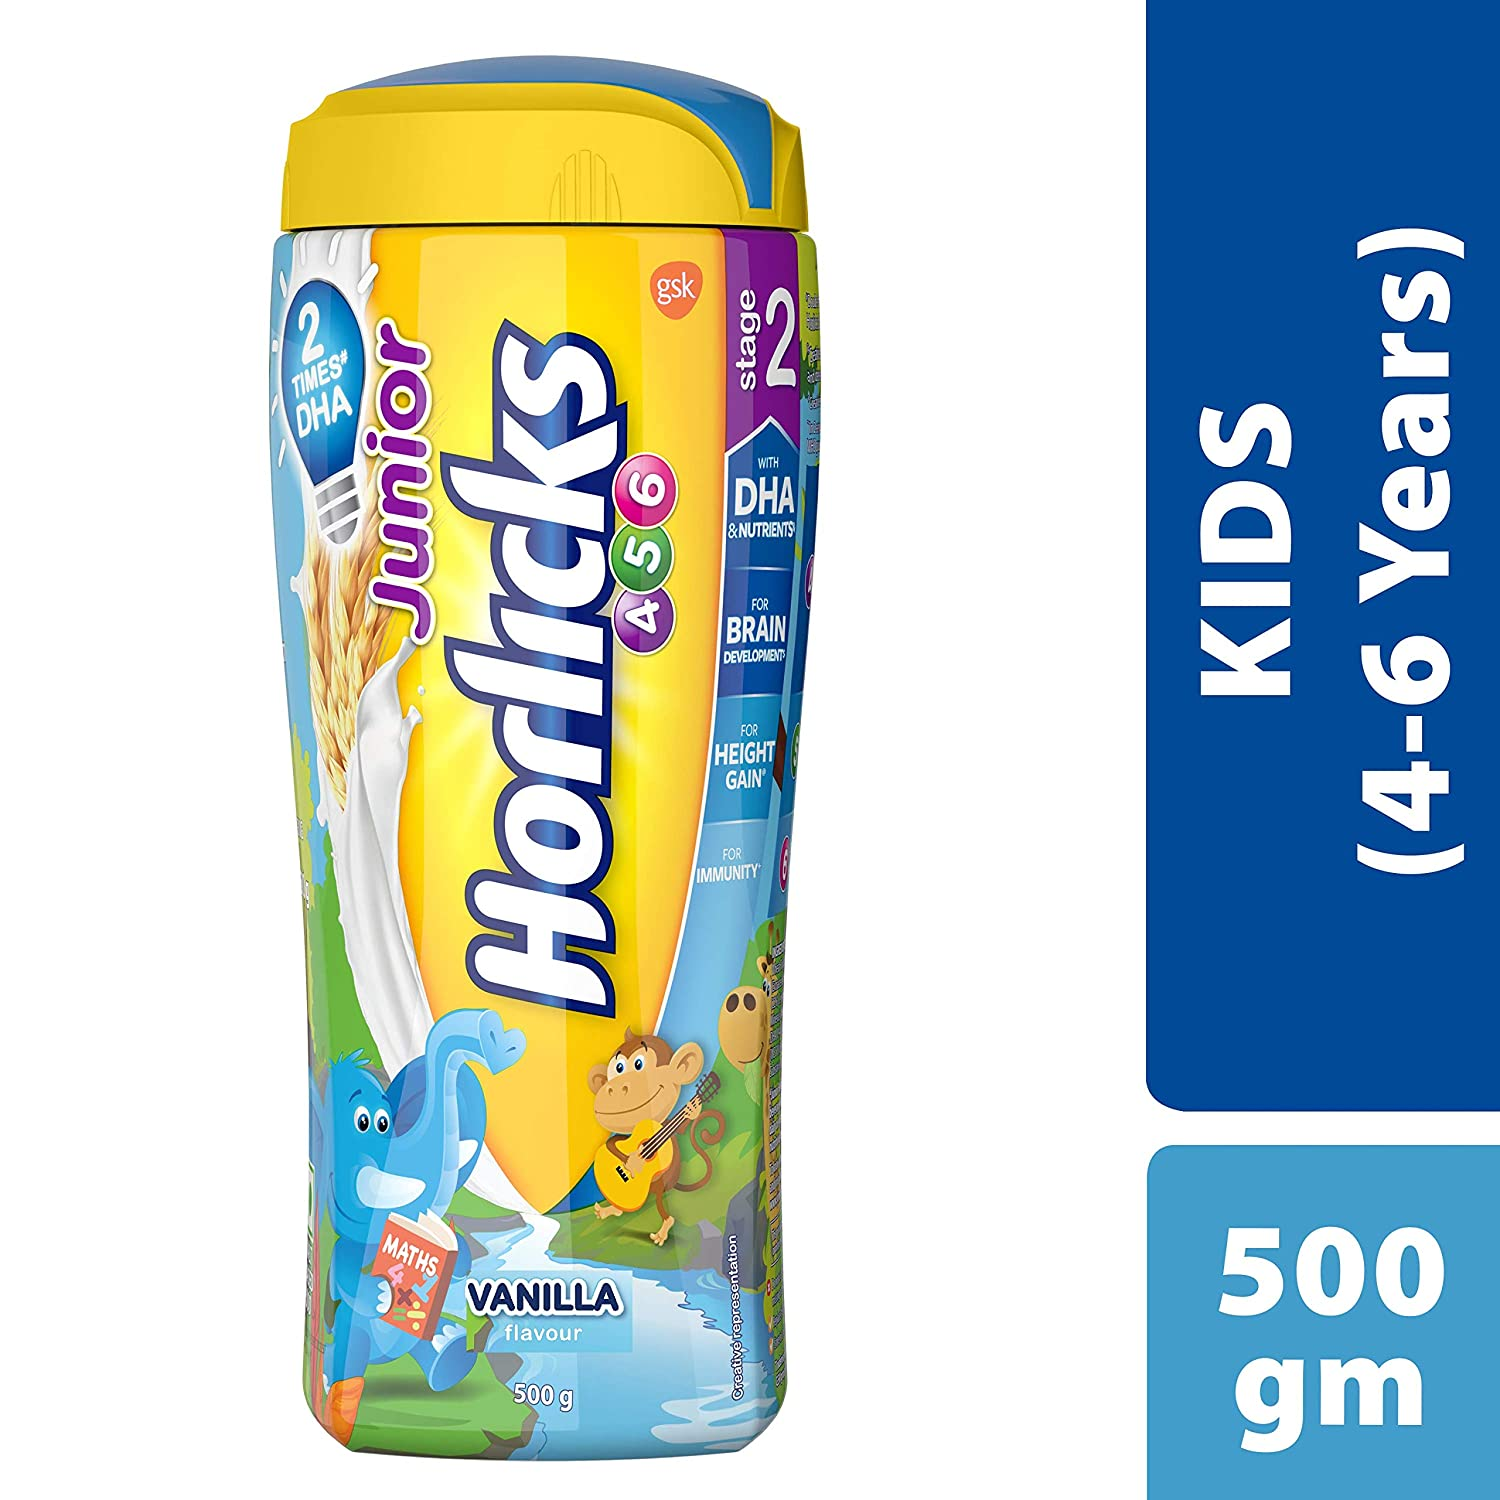 Buy Junior Horlicks Stage 2 4 6 Years Health And Nutrition Drink 500 G Pet Jar Vanilla Flavor Online At Low Prices In India Amazon In